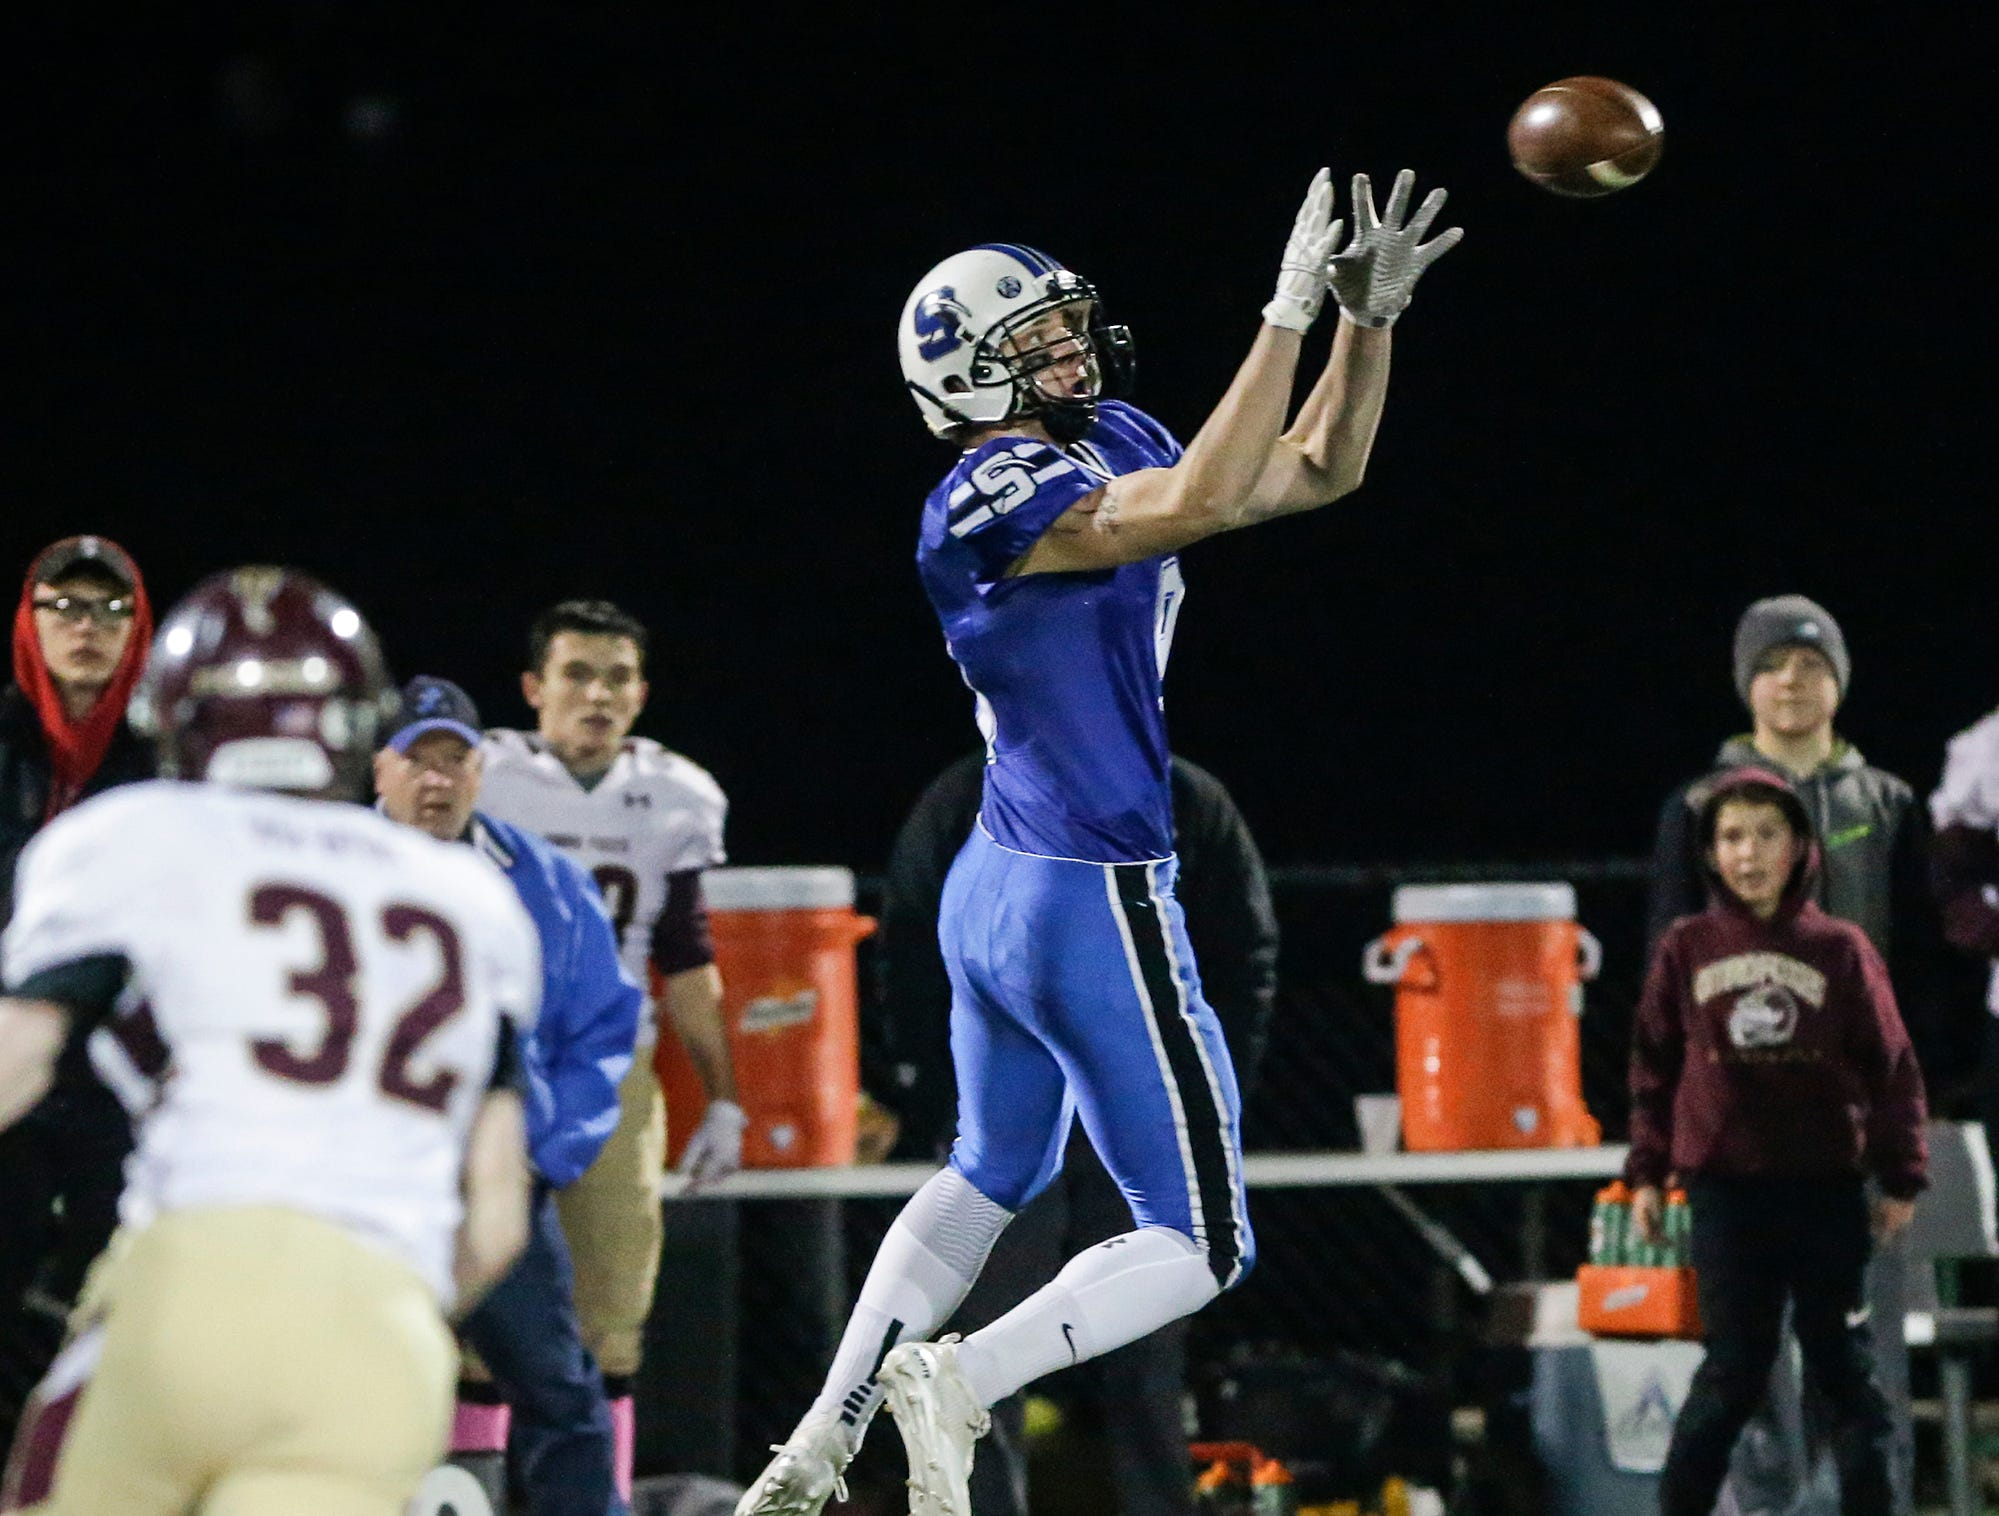 St. Mary's Springs Academy football's Cade Christensen catches this ball for a six yard gain gainst Omro High School Friday, October 26, 2018 during their WIAA division five, level 2 playoff game played in Lomira, Wisconsin. Springs won the match-up 33-20. Doug Raflik/USA TODAY NETWORK-Wisconsin